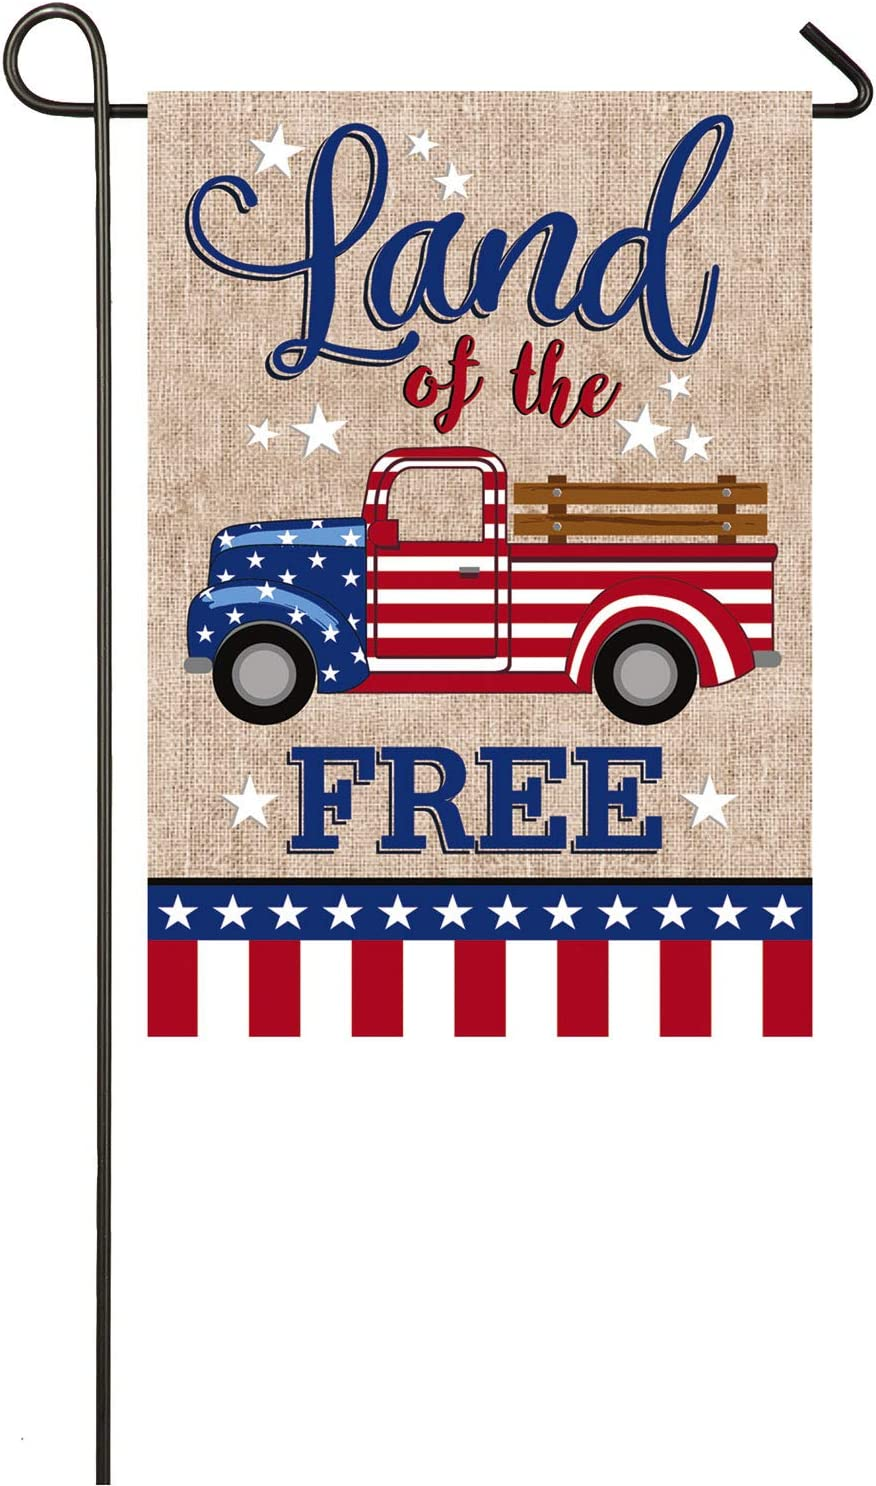 Evergreen Flag Patriotic Truck Burlap Garden Flag - 12.5 x 18 Inches Outdoor Decor for Homes and Gardens